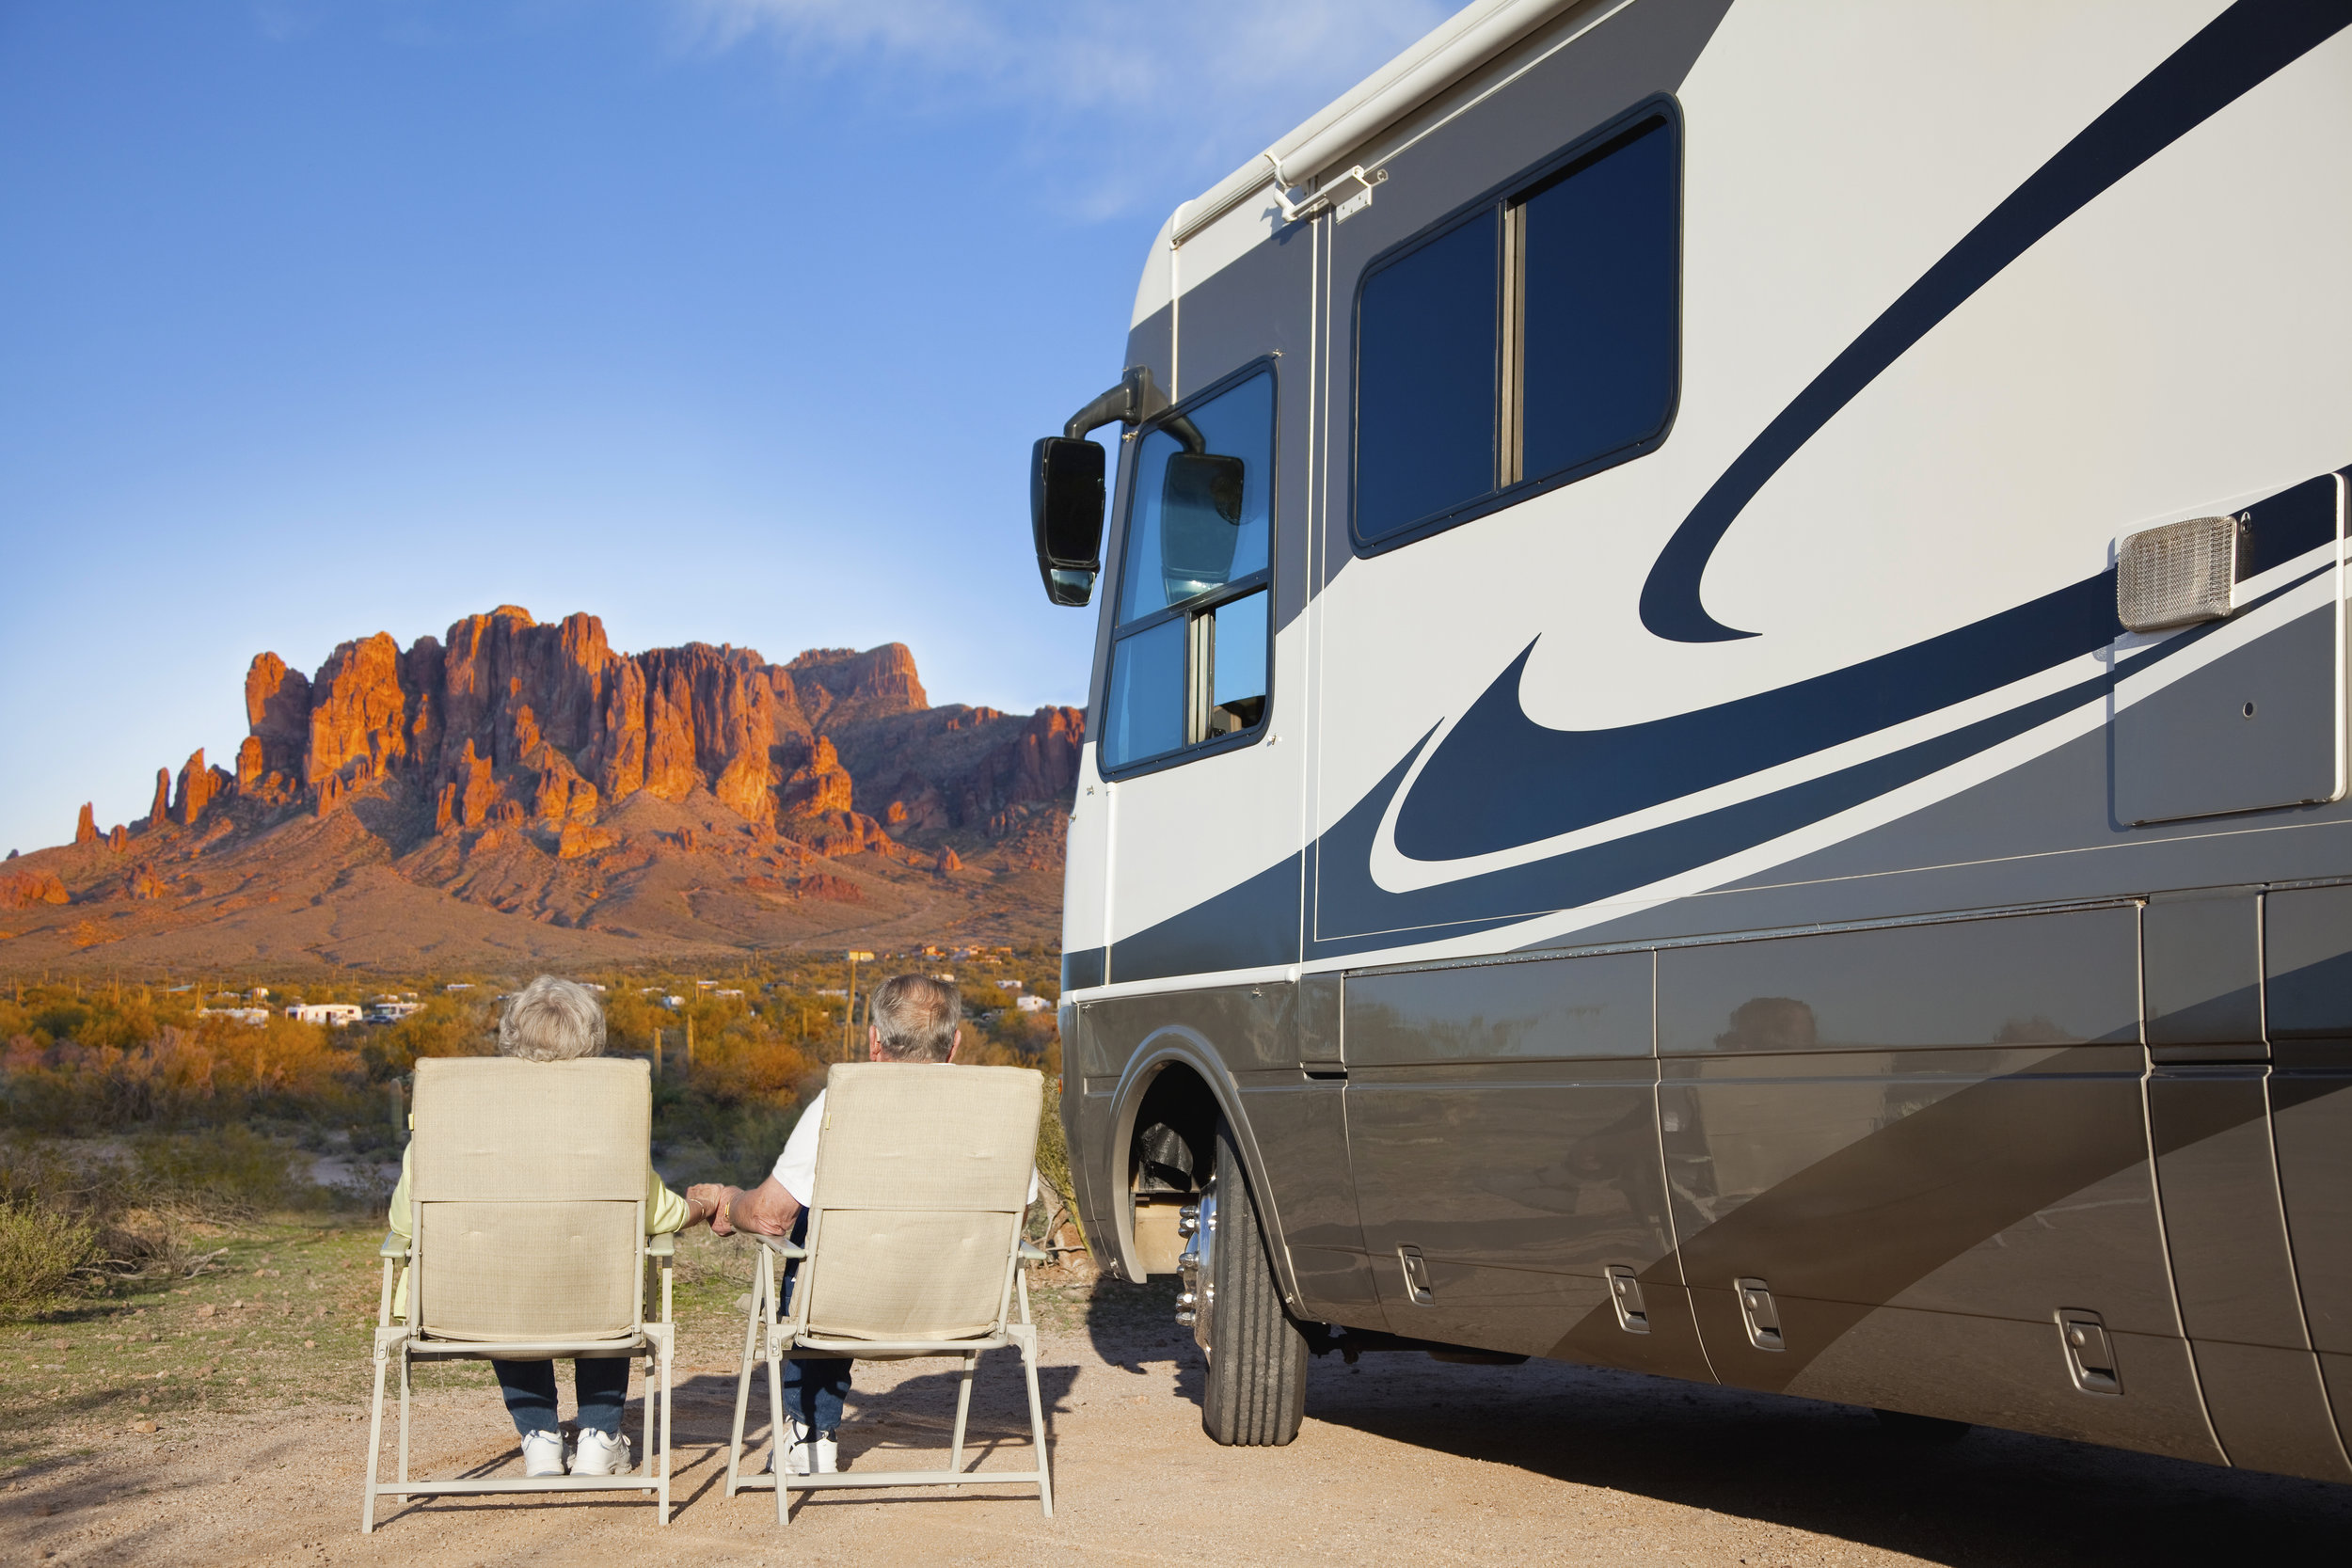 RV - RV insurance can protect your motorhome, travel trailer, camper and even your horse trailer. Here at Navage Insurance Group LLC, let us help you select the right coverage for your RV needs and get a great price at the same time.· RVs that are for personal, recreational use can be insured for up to 250 days per year. This gives you plenty of time to travel south and enjoy some warmer winter weather or that extended vacation.· Liability coverage provides you with bodily injury and property damage coverage, medical payments, uninsured coverage and more. Coverage varies by state.